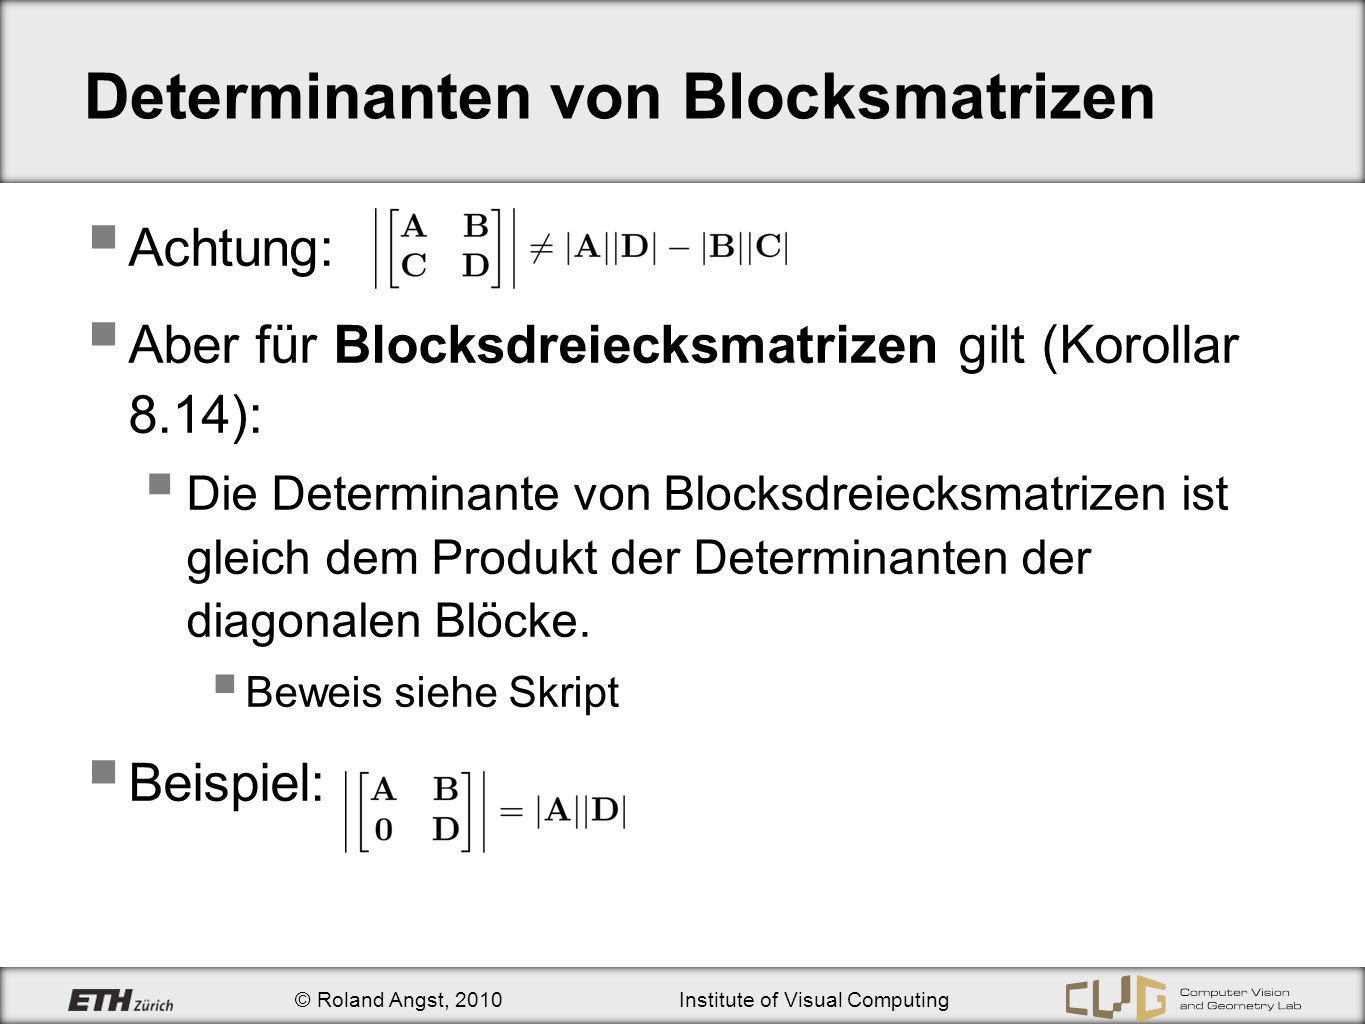 Determinanten von Blocksmatrizen